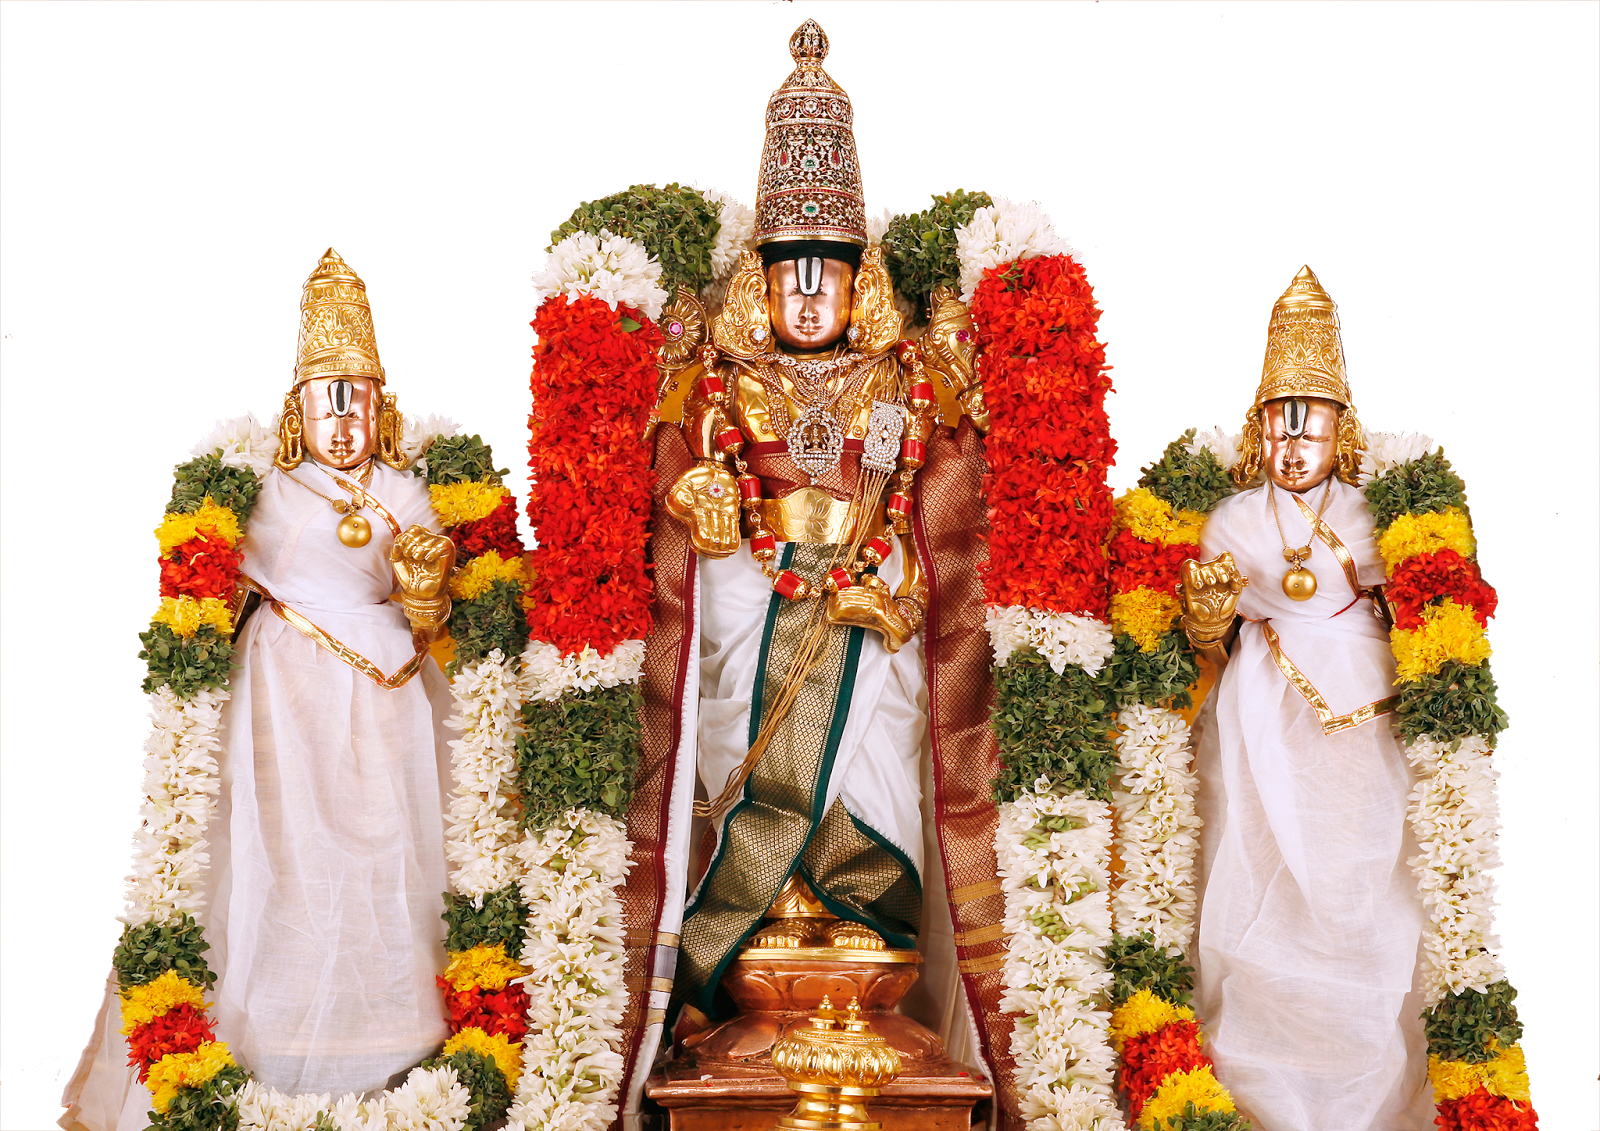 God clipart lord venkateswara. Gods cliparts and images